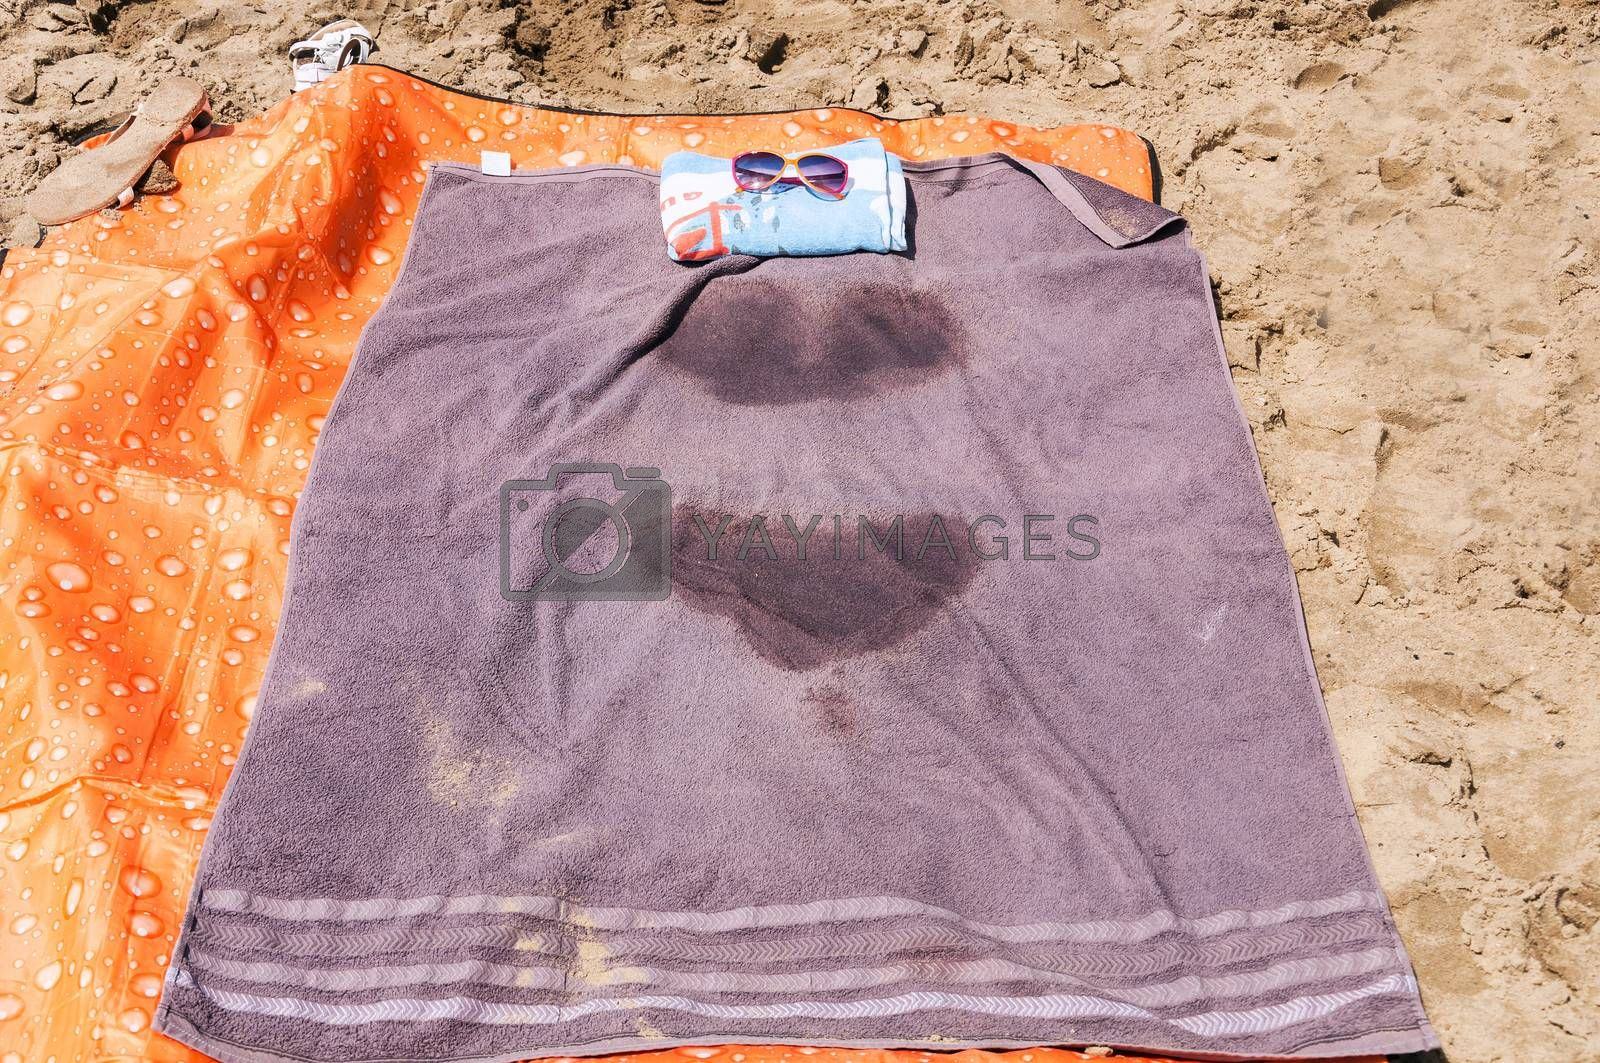 A towel with wet spots laying on the beach.